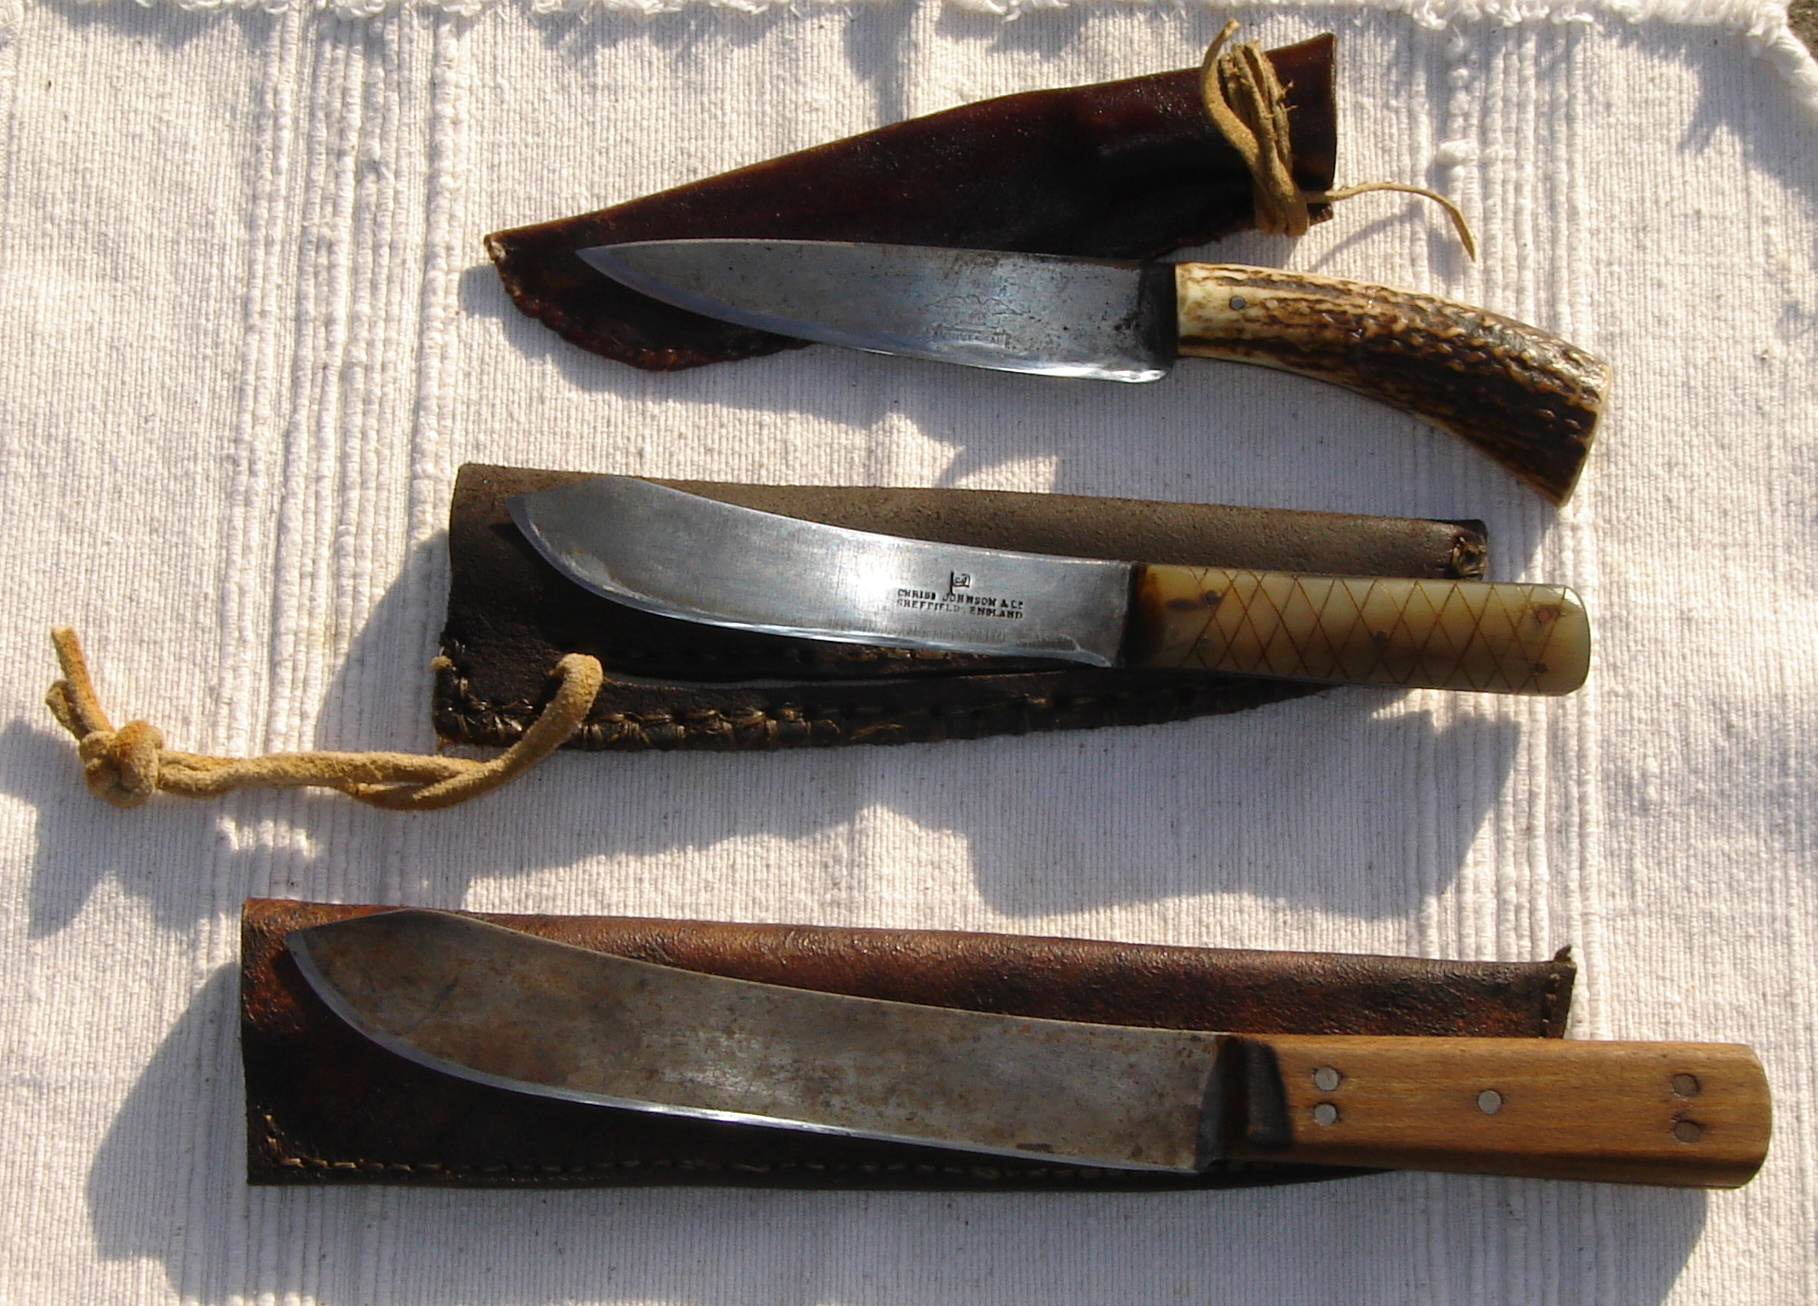 Knives The G A Ruxton Memorial Museum